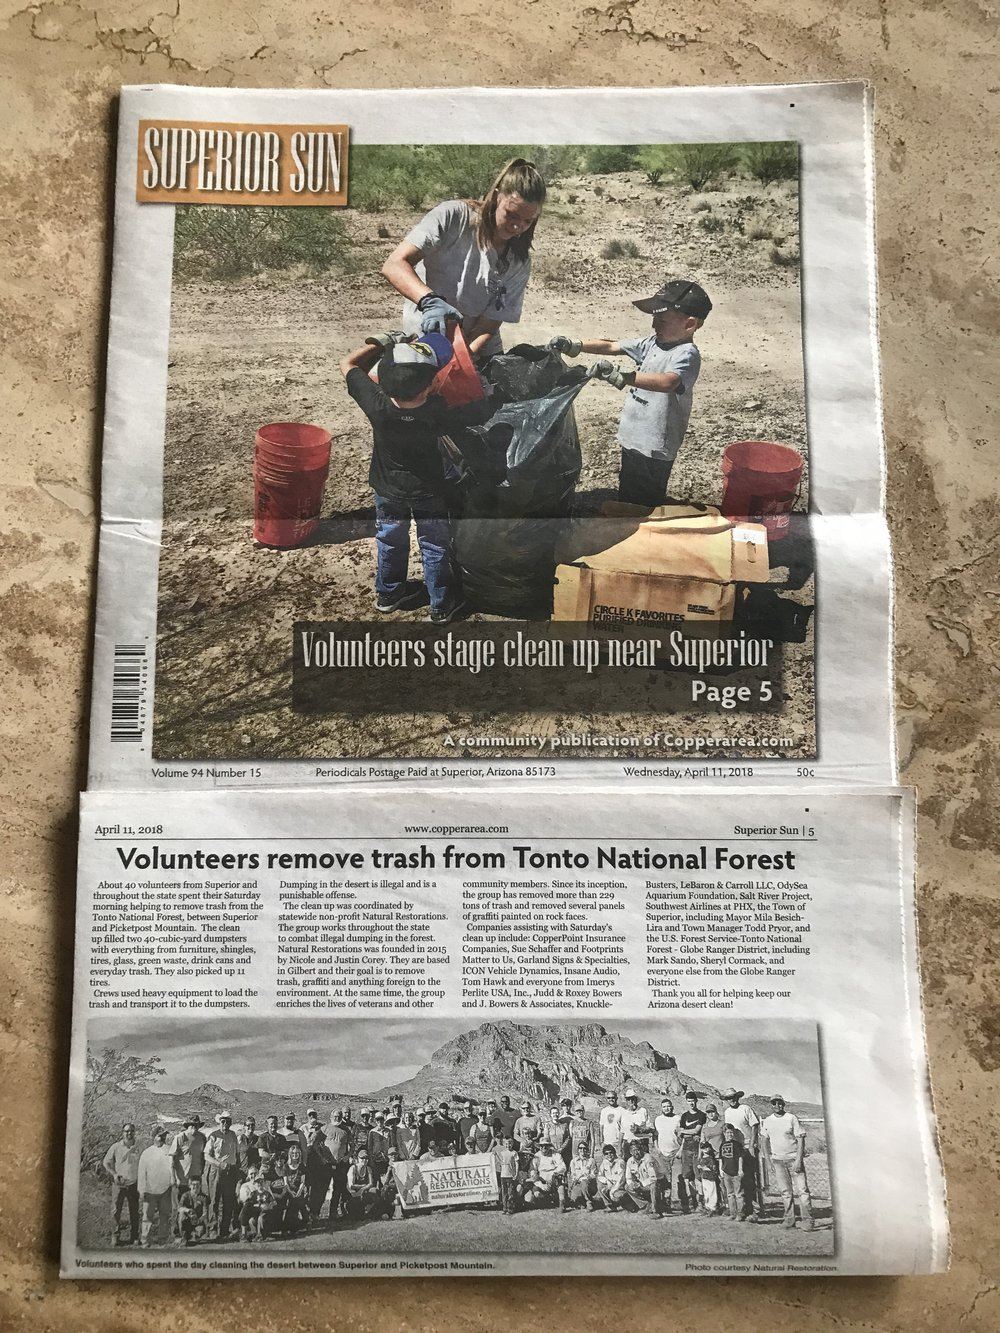 Superior Sun - Featured our Desert Cleanup on the front page!